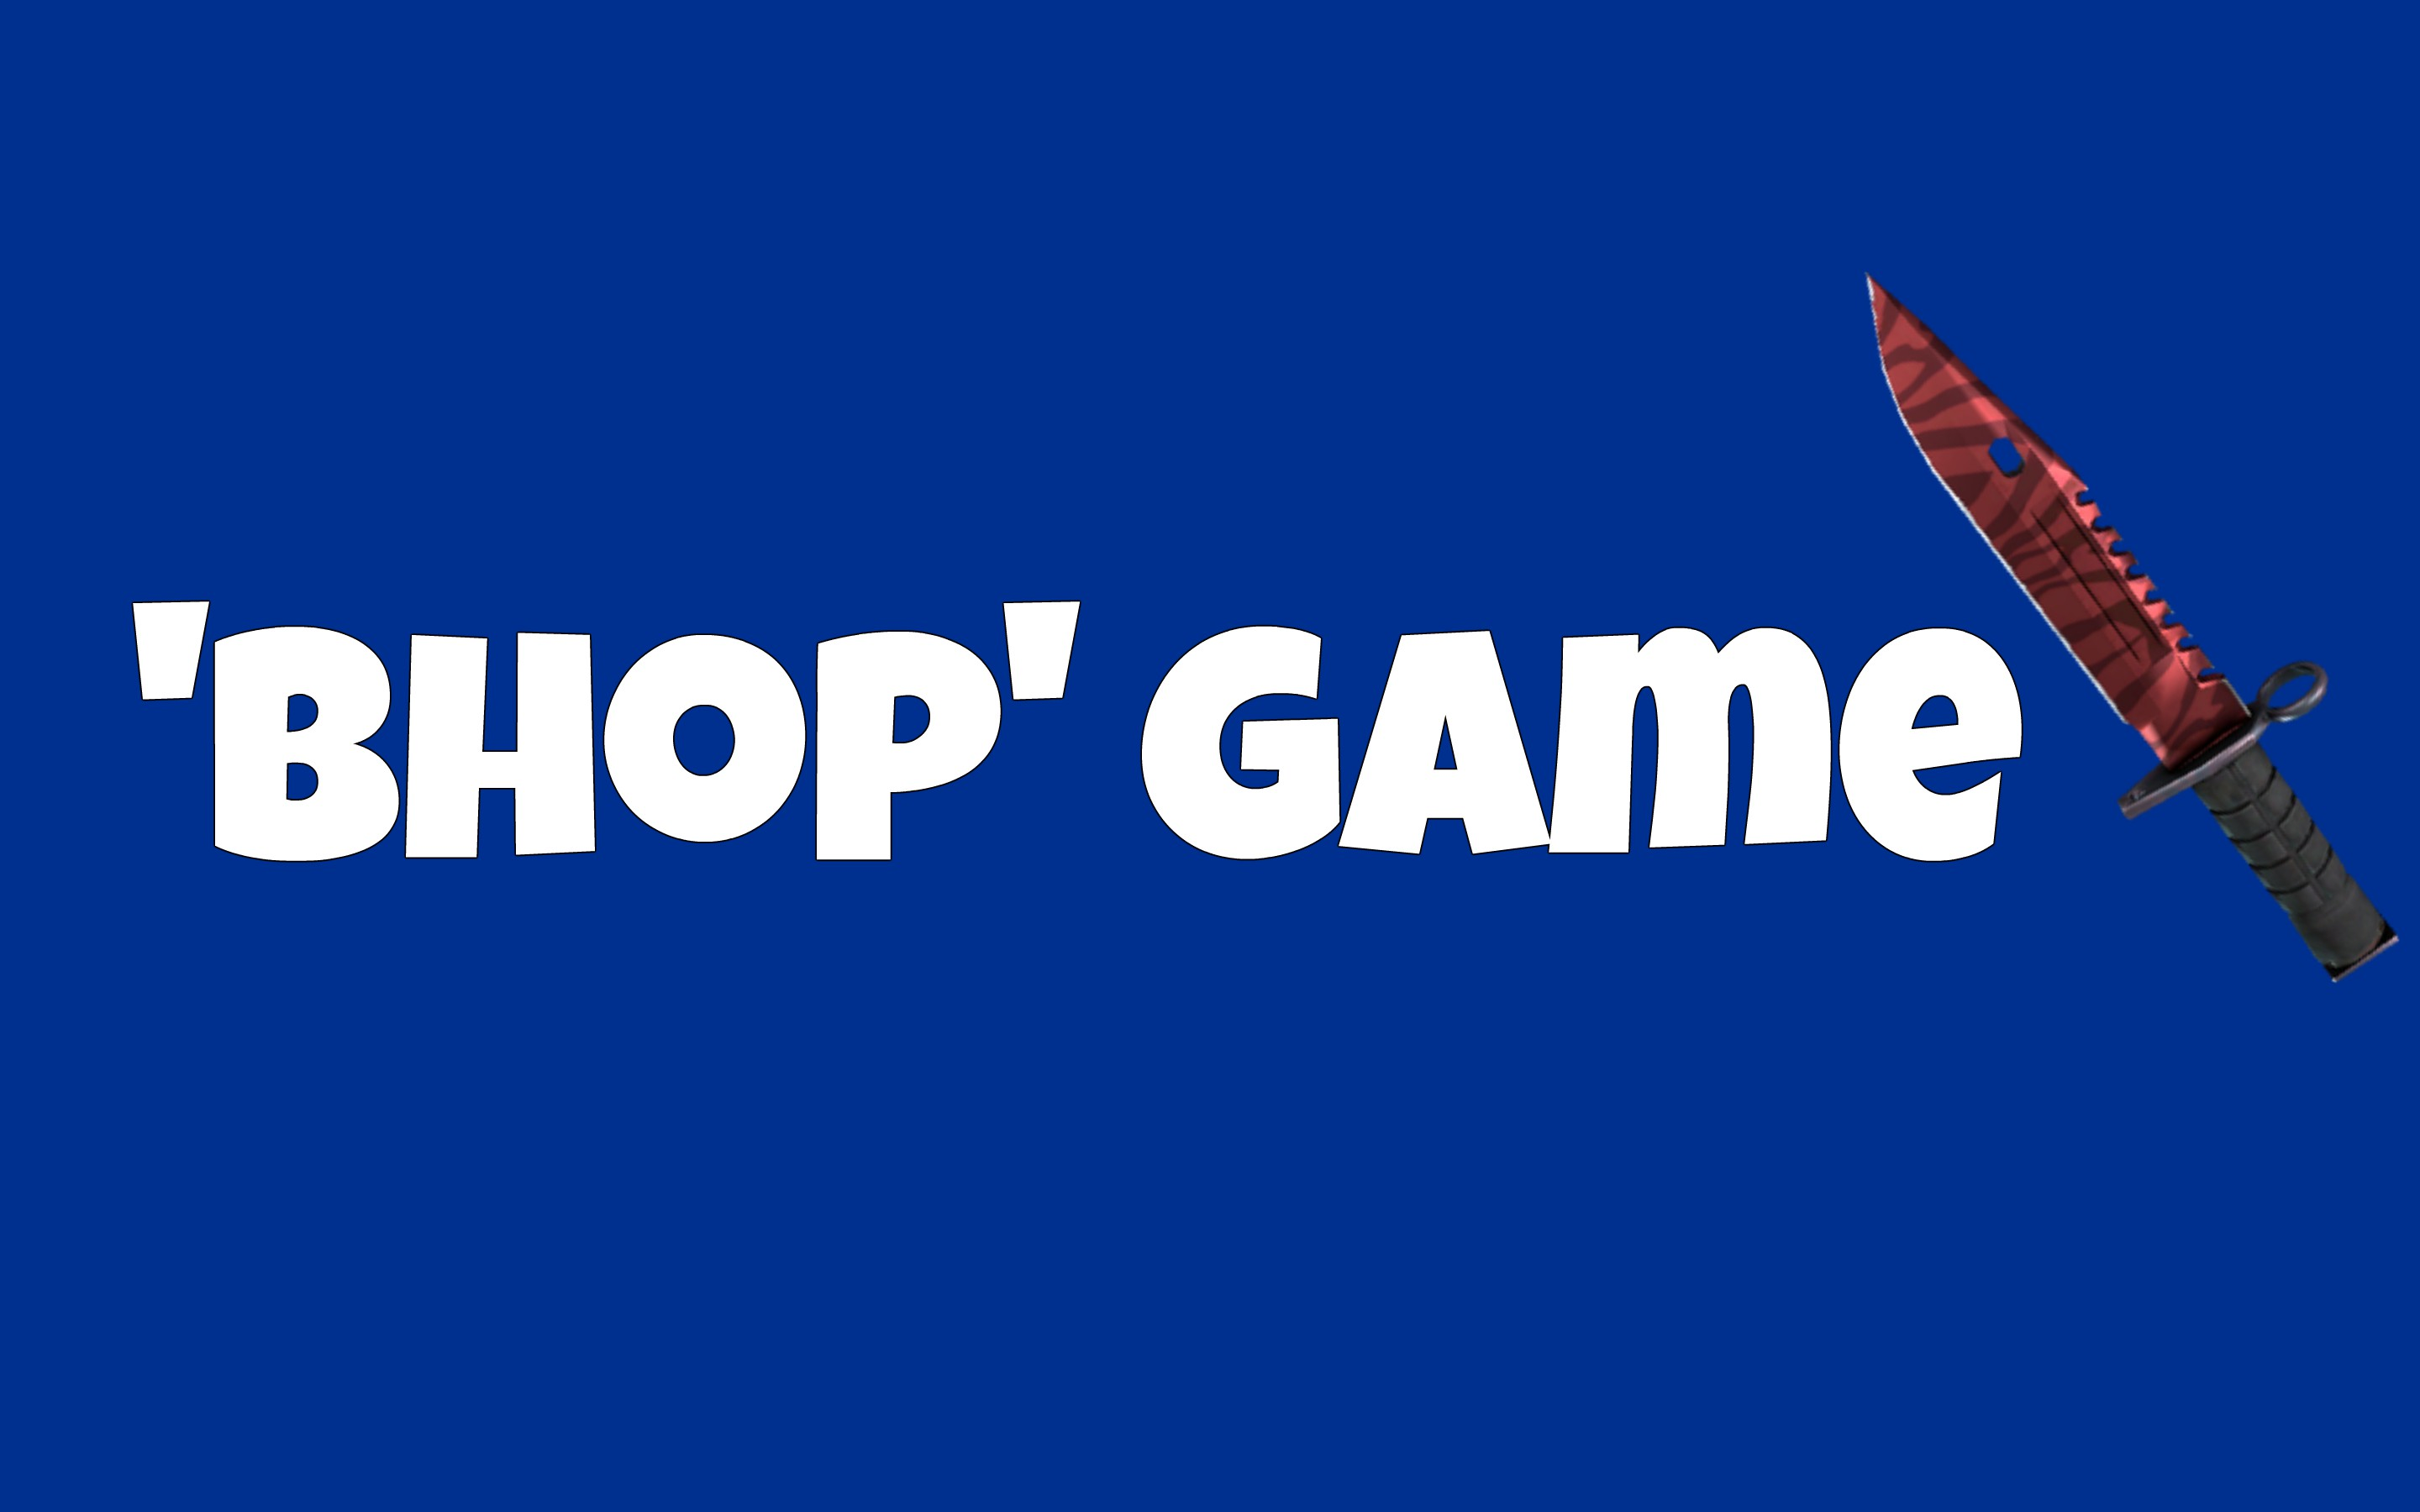 'Bhop' Game